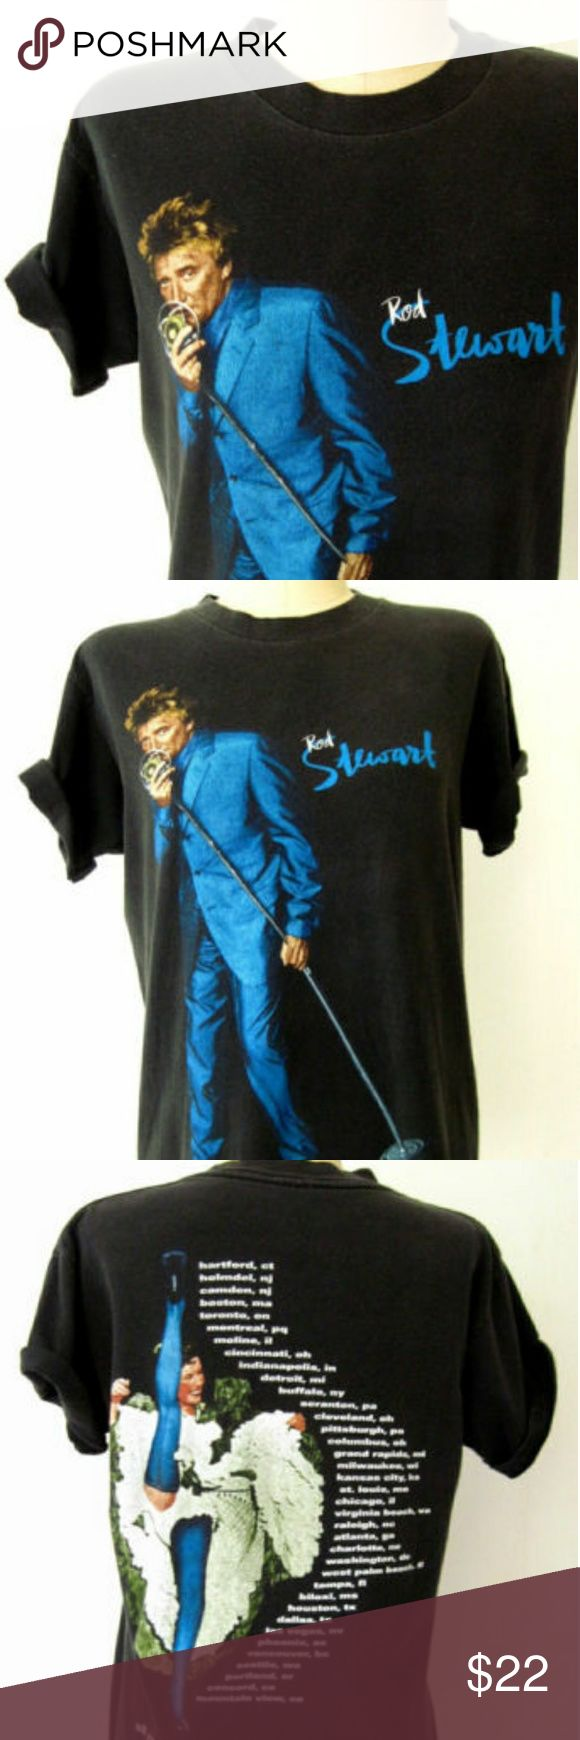 "90s Rod Stewart Tshirt Vintage Tour Tee 1990s ROD STEWART concert tee / t-shirt. Bright blue-suited Rod on front and all show locations on back, with ""all rod. all night"" at bottom. Great condition. Faded black preshrunk 100% cotton.   Fit for s/m:  up to 38"" bust 25"" length Tops Tees - Short Sleeve"